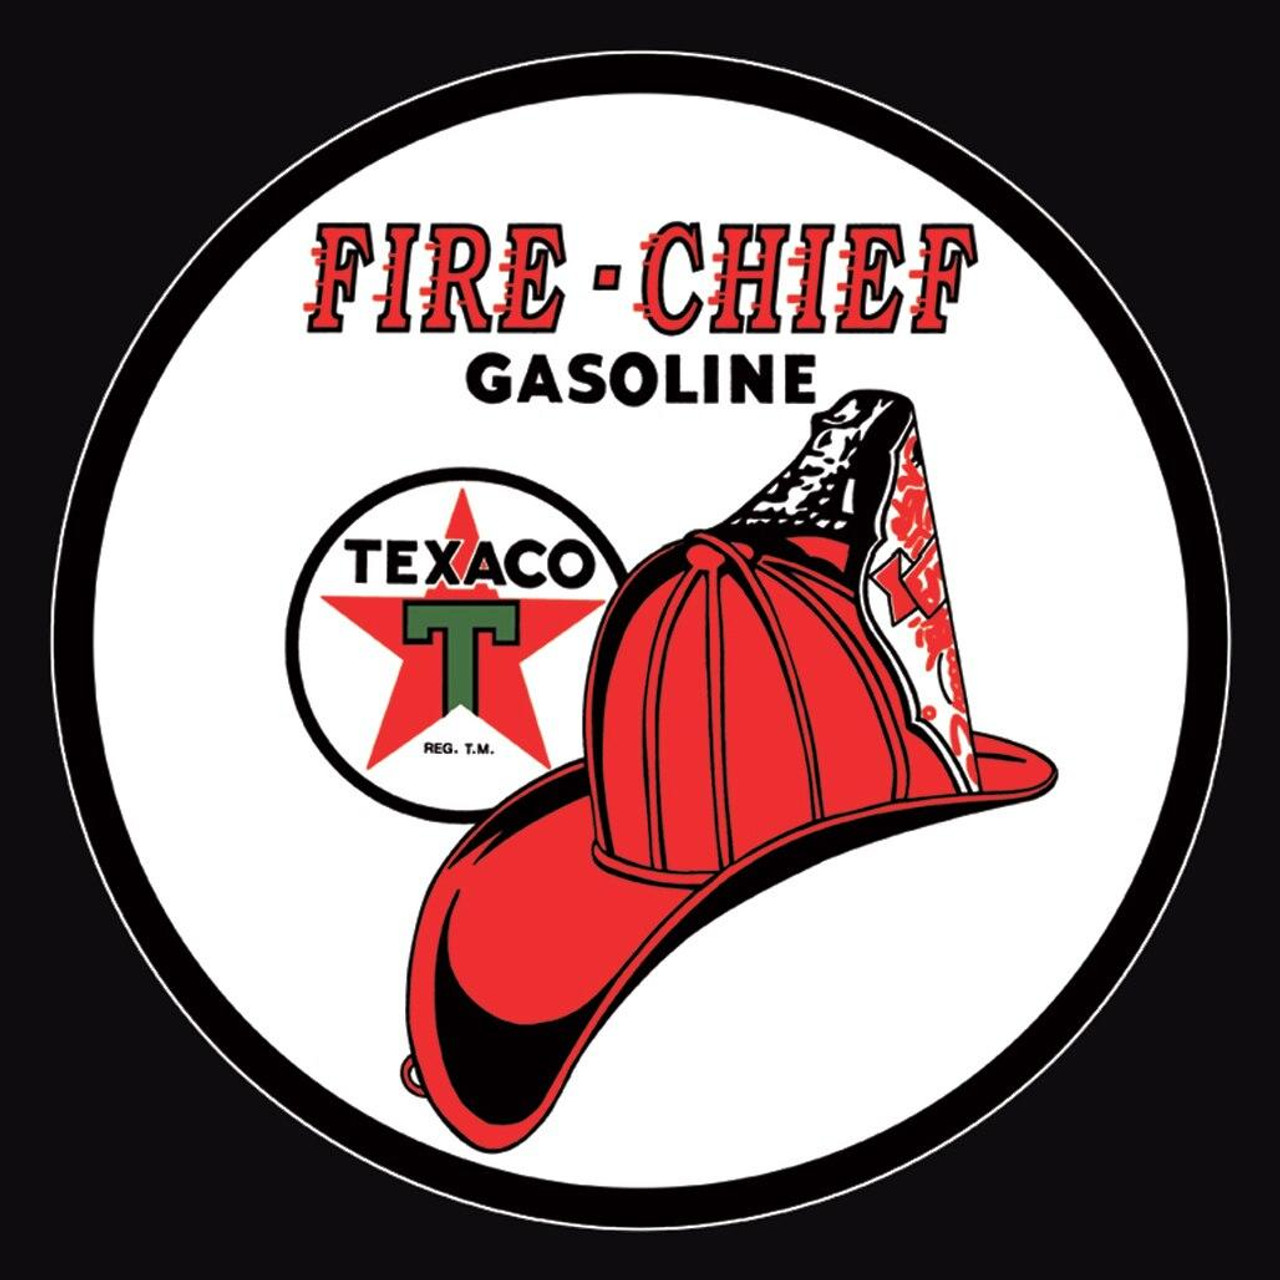 Texaco Texaco/Fire Chief